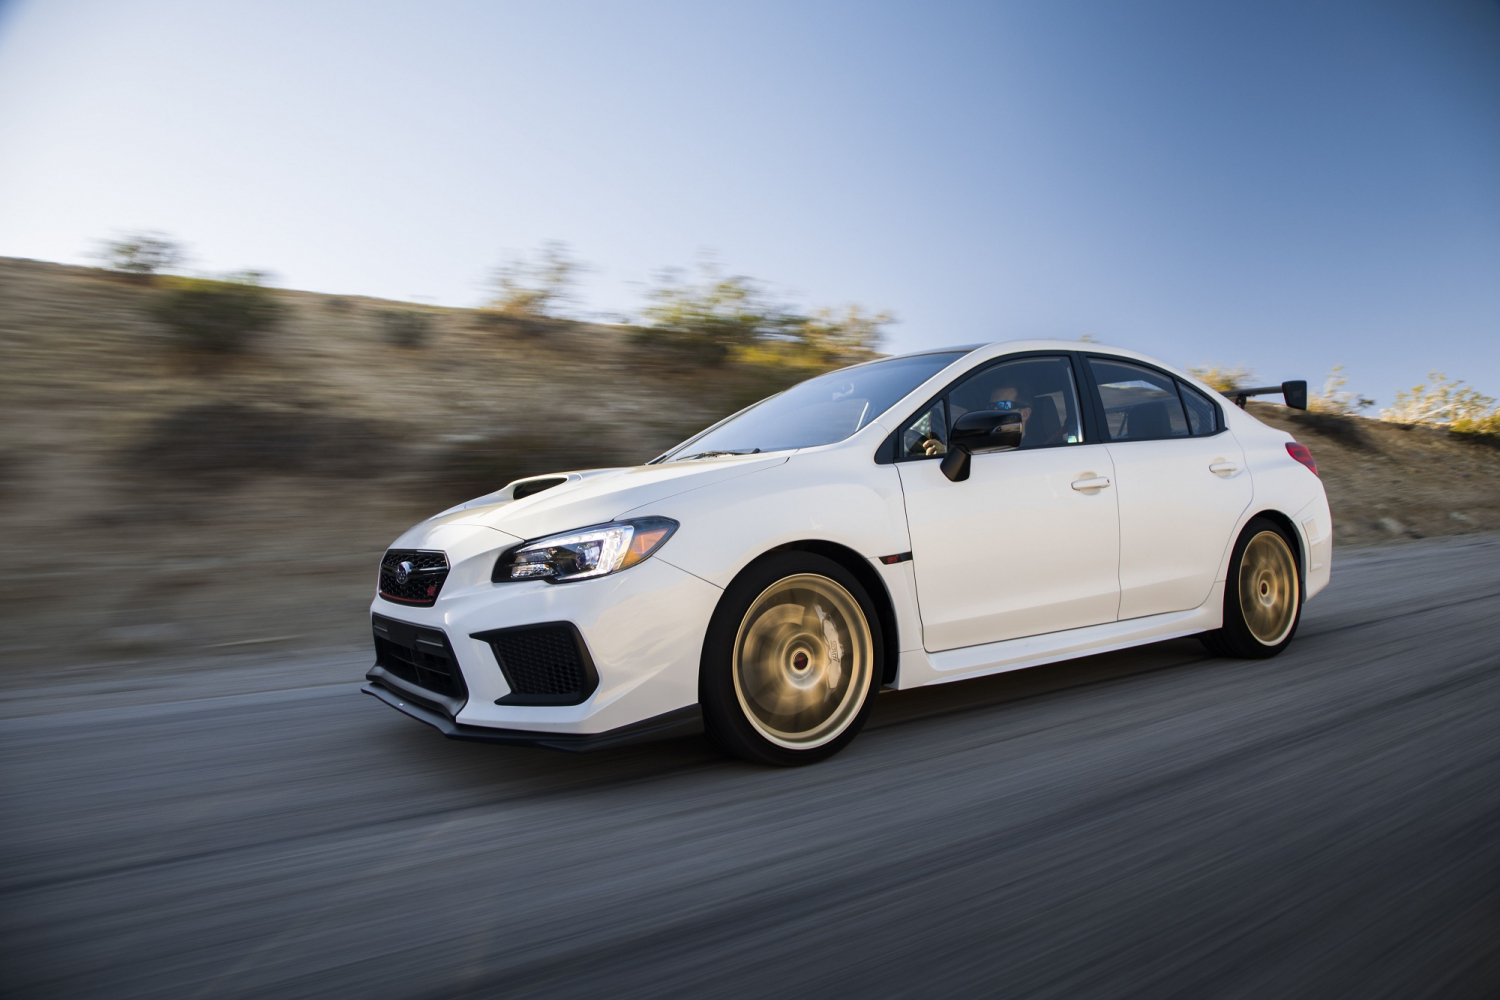 Subaru Wrx Sti Bears Its Golden Wheels On The Nurburgring 19 Inch Prevnext